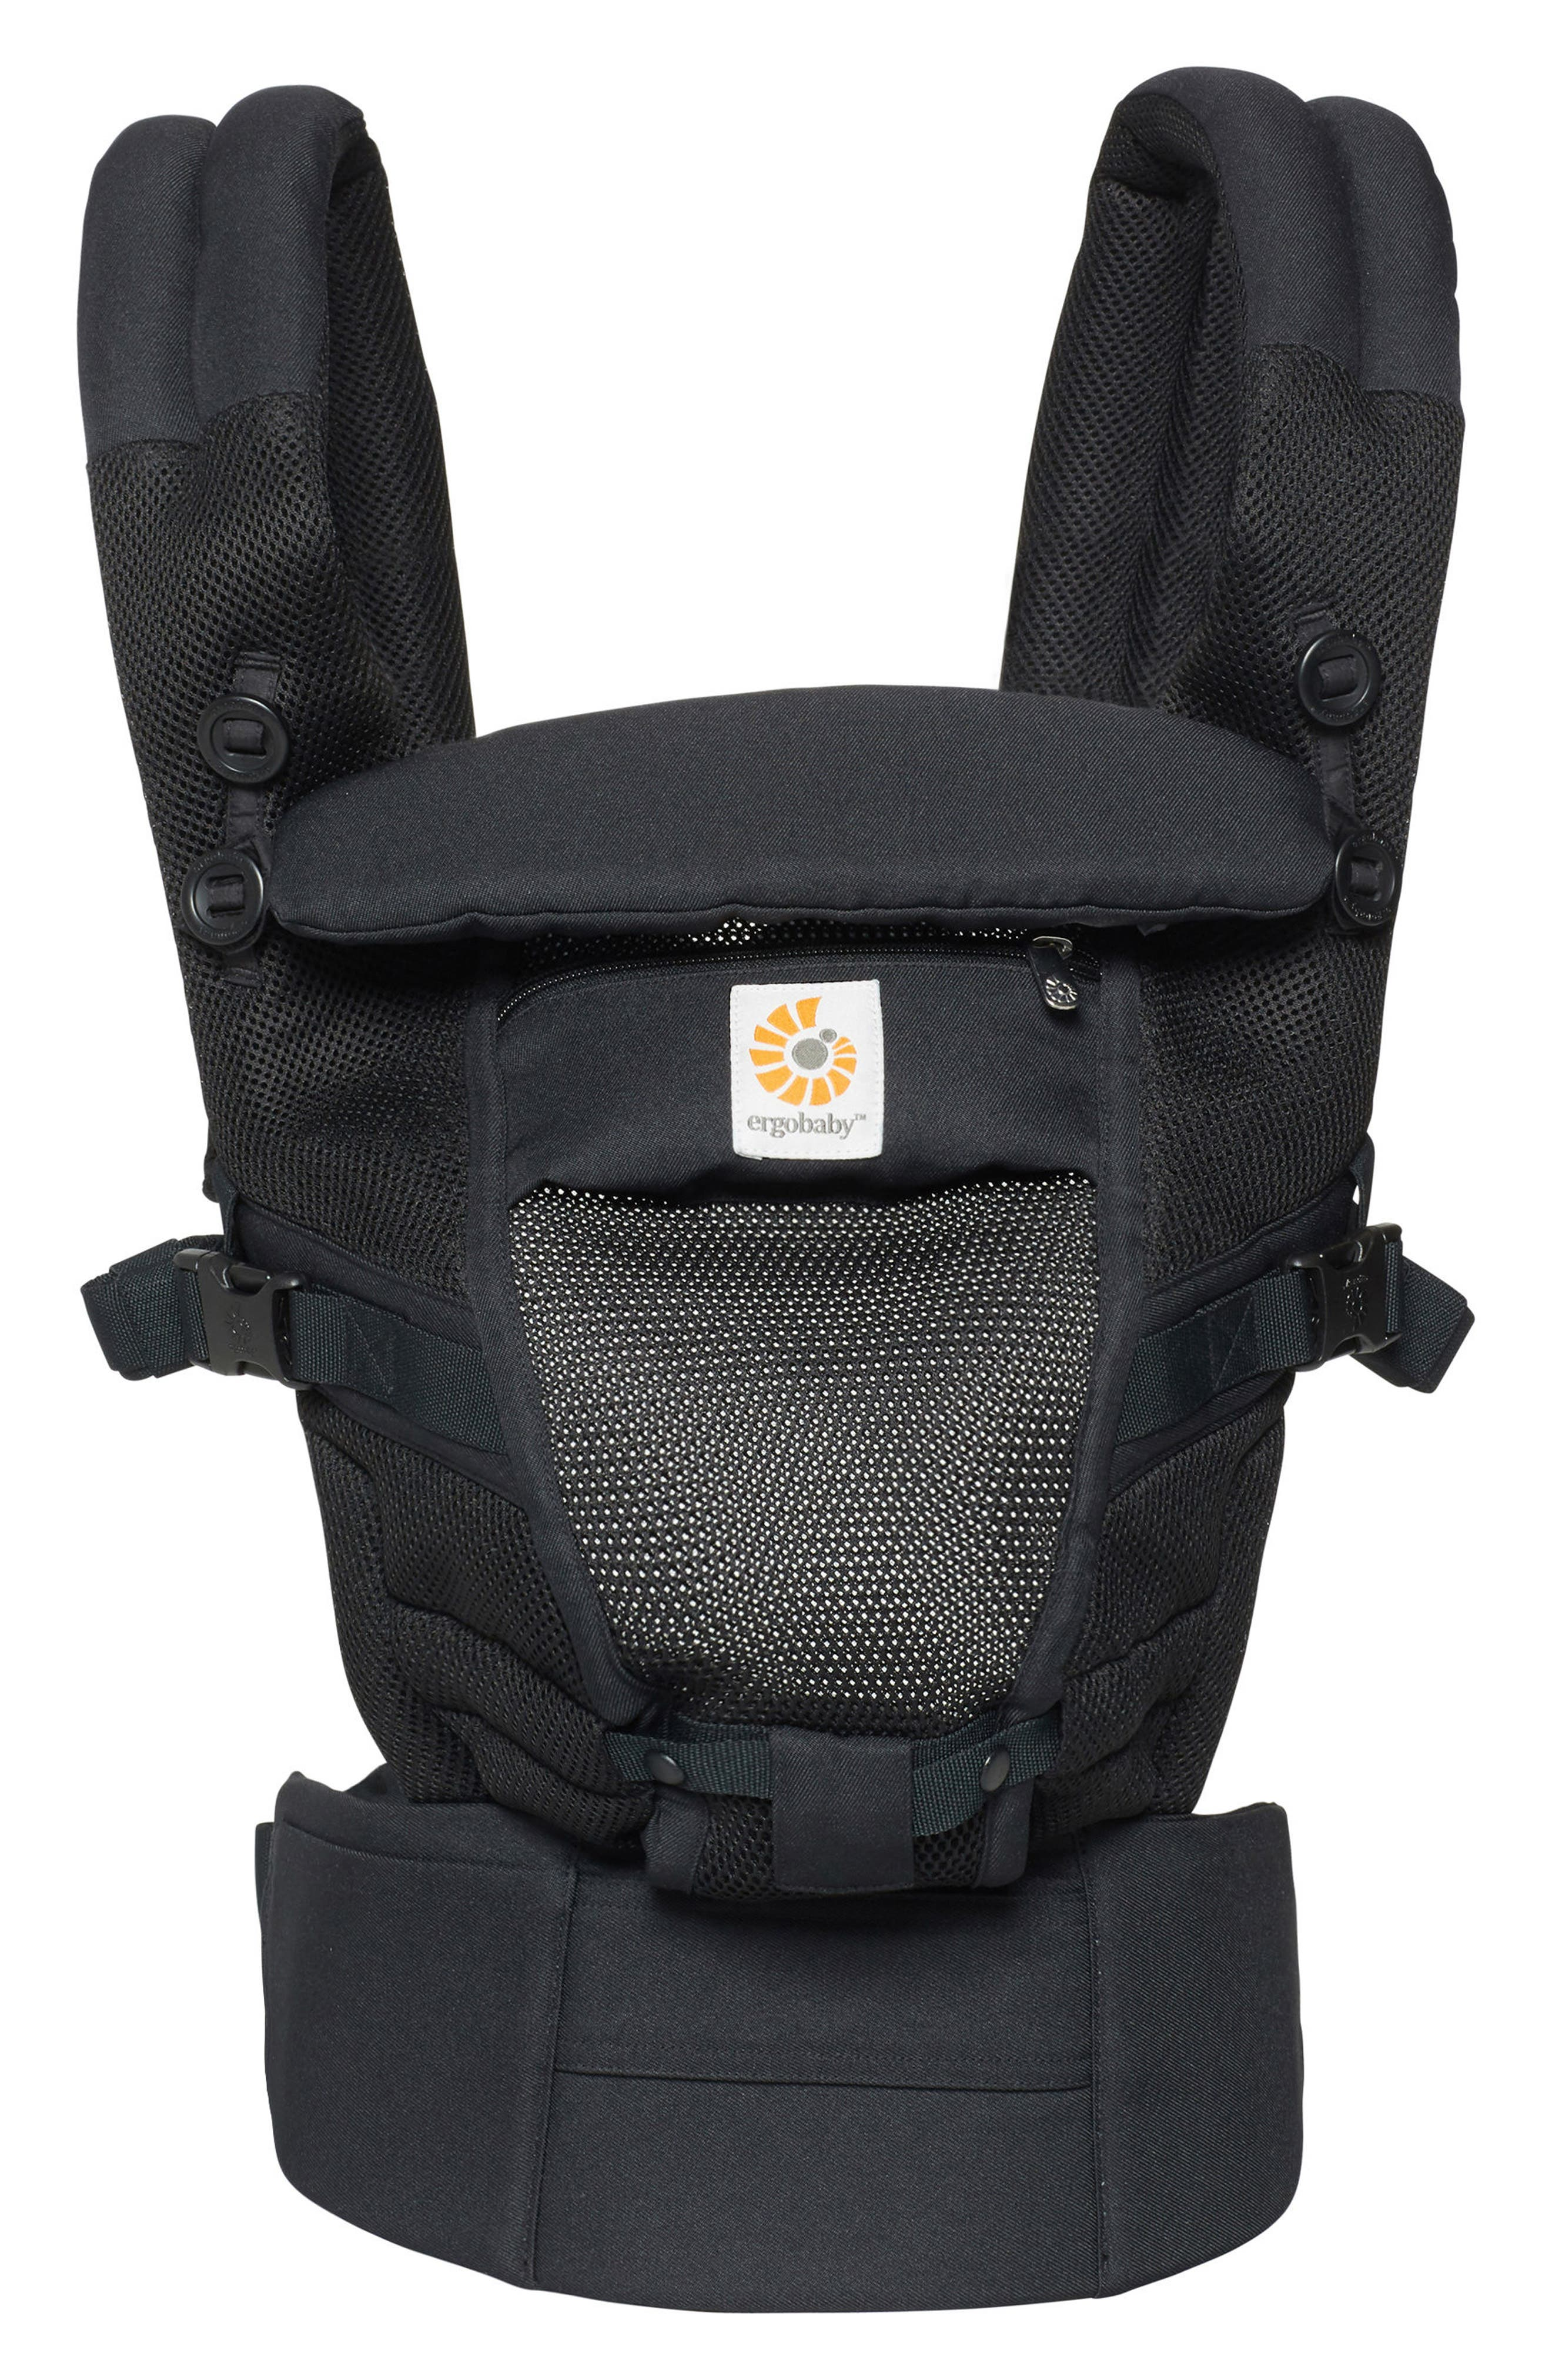 Main Image - ERGObaby Three Position ADAPT Baby Carrier